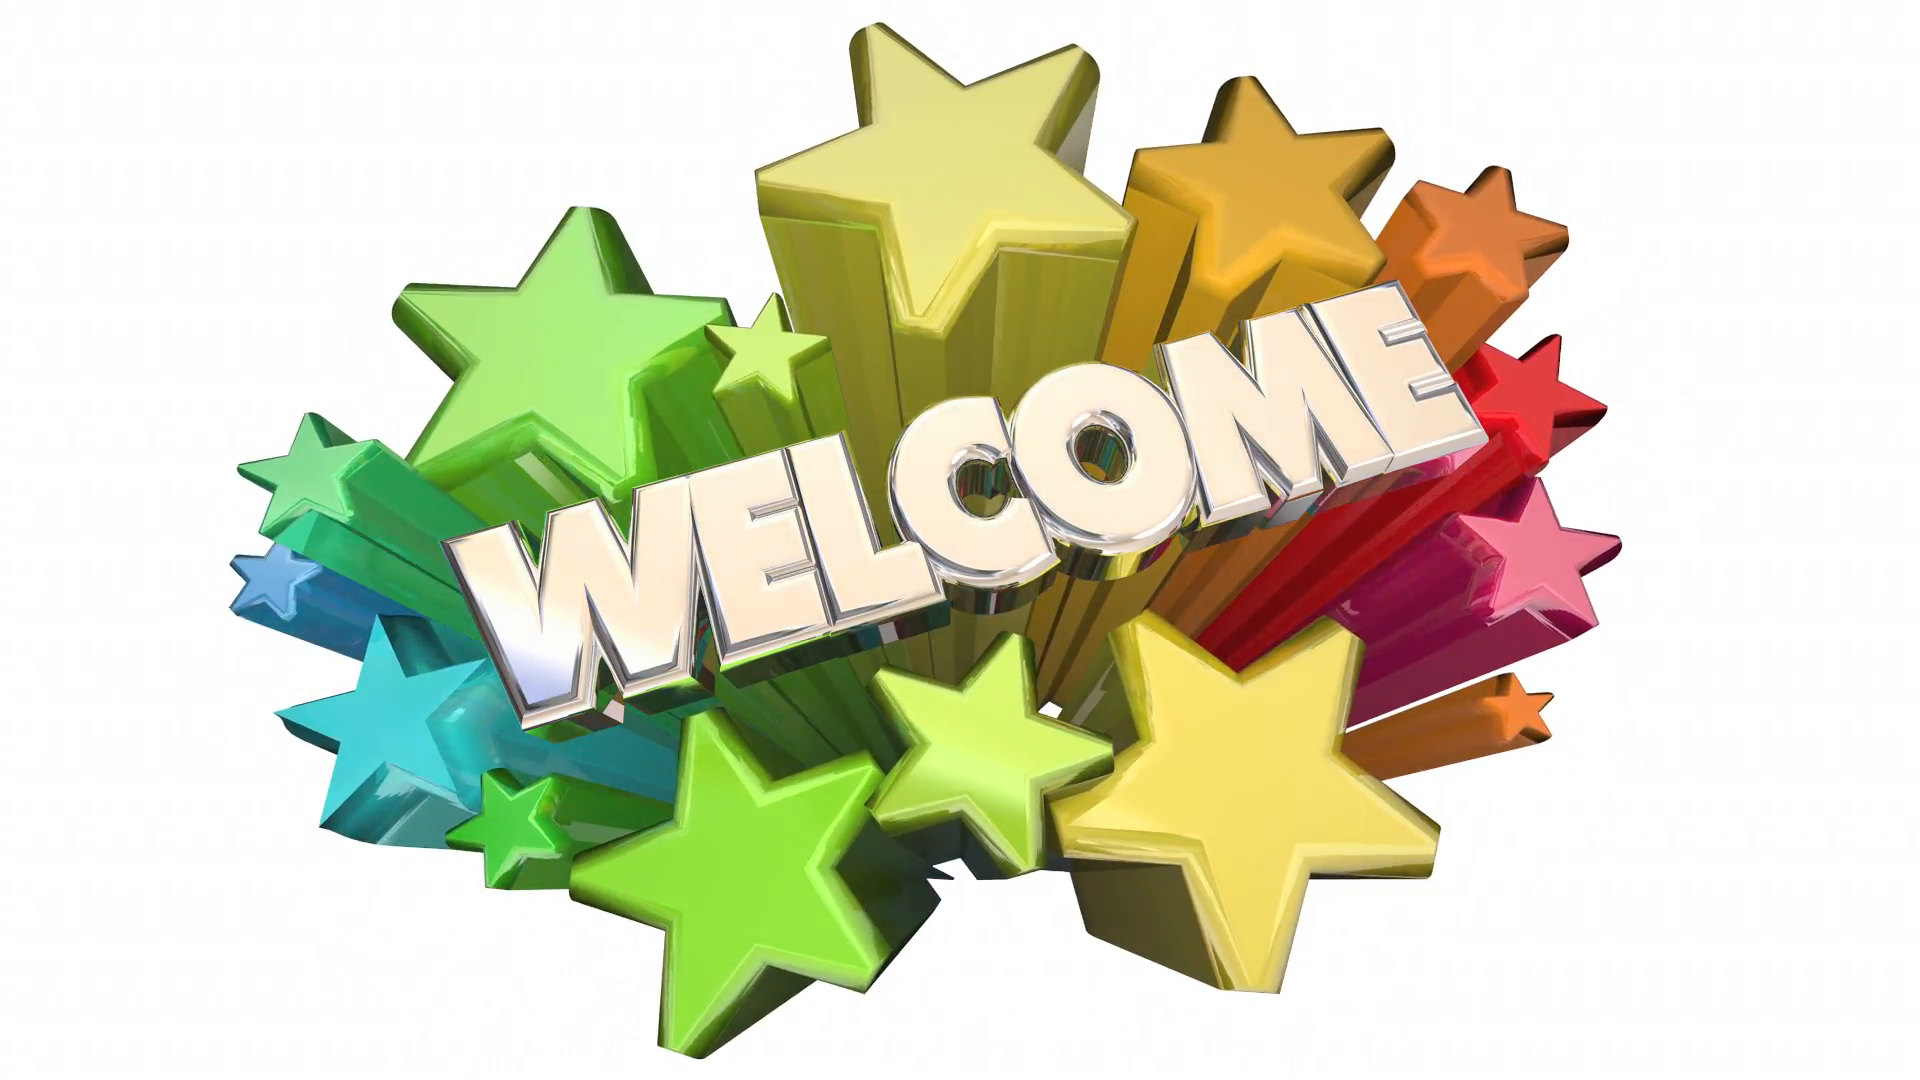 welcome-stars-greetings-word-3d-animation_4cmw_kft6l__F0014.png